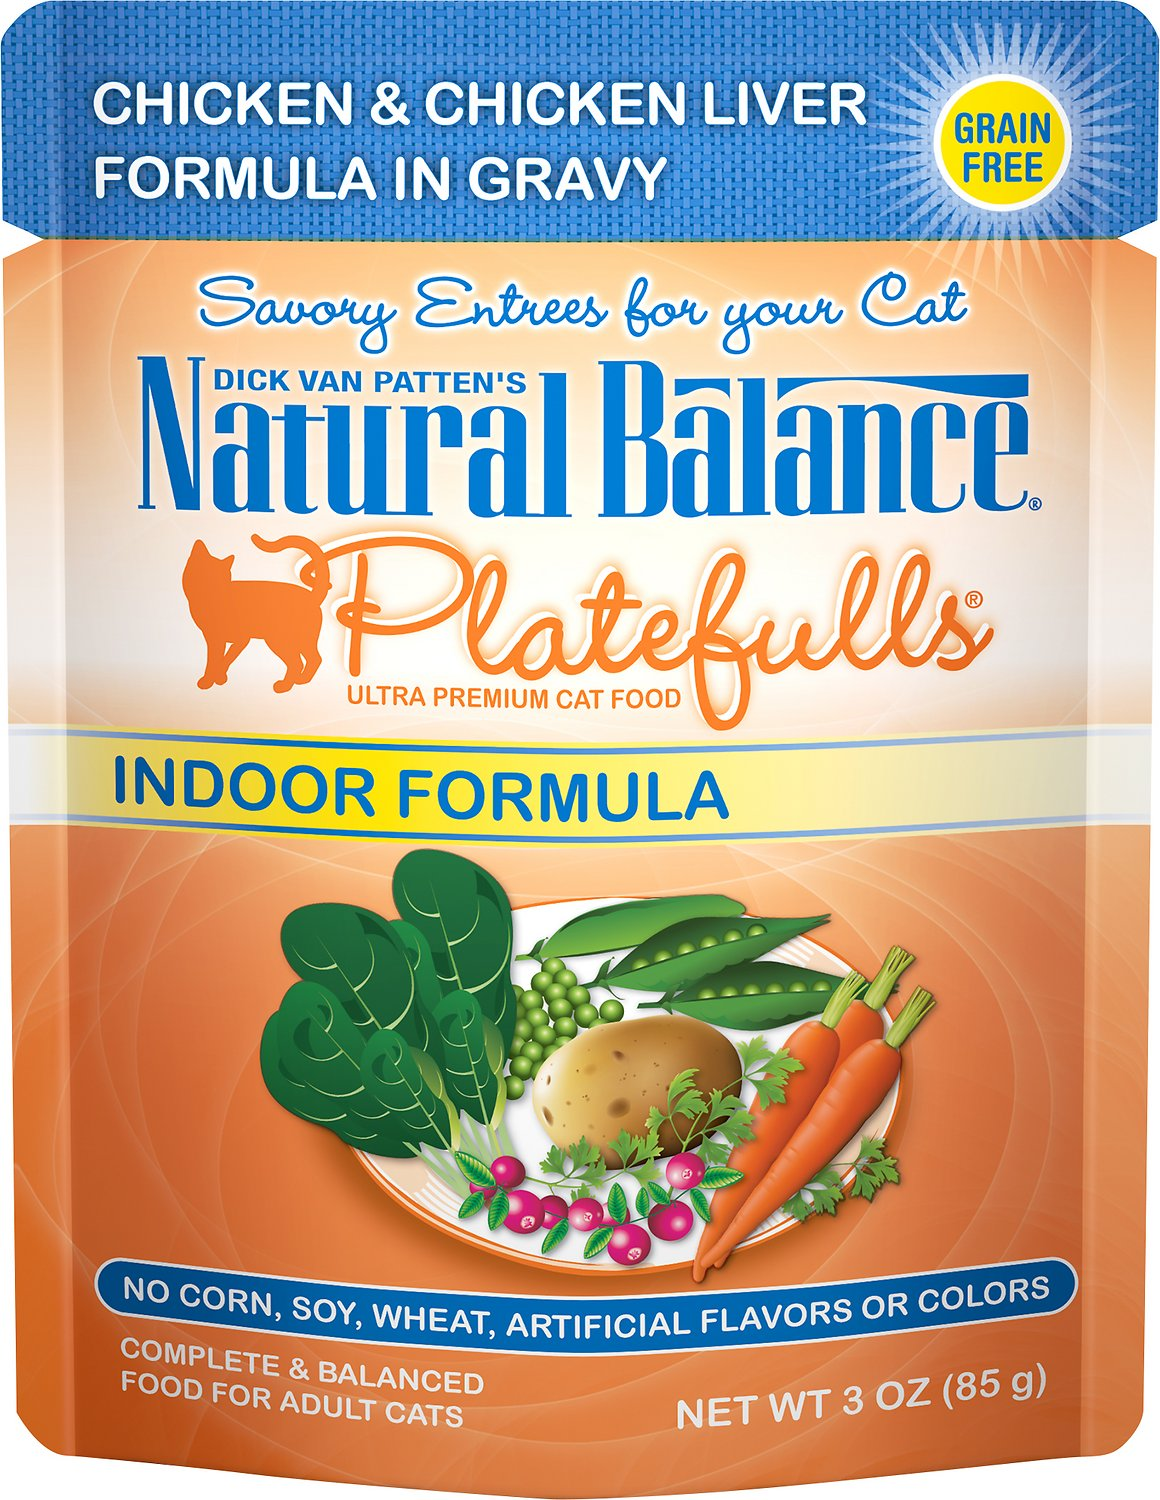 Natural Balance Platefulls Indoor Formula Chicken & Chicken Liver in Gravy Grain-Free Cat Food Pouches, 3-oz pouch